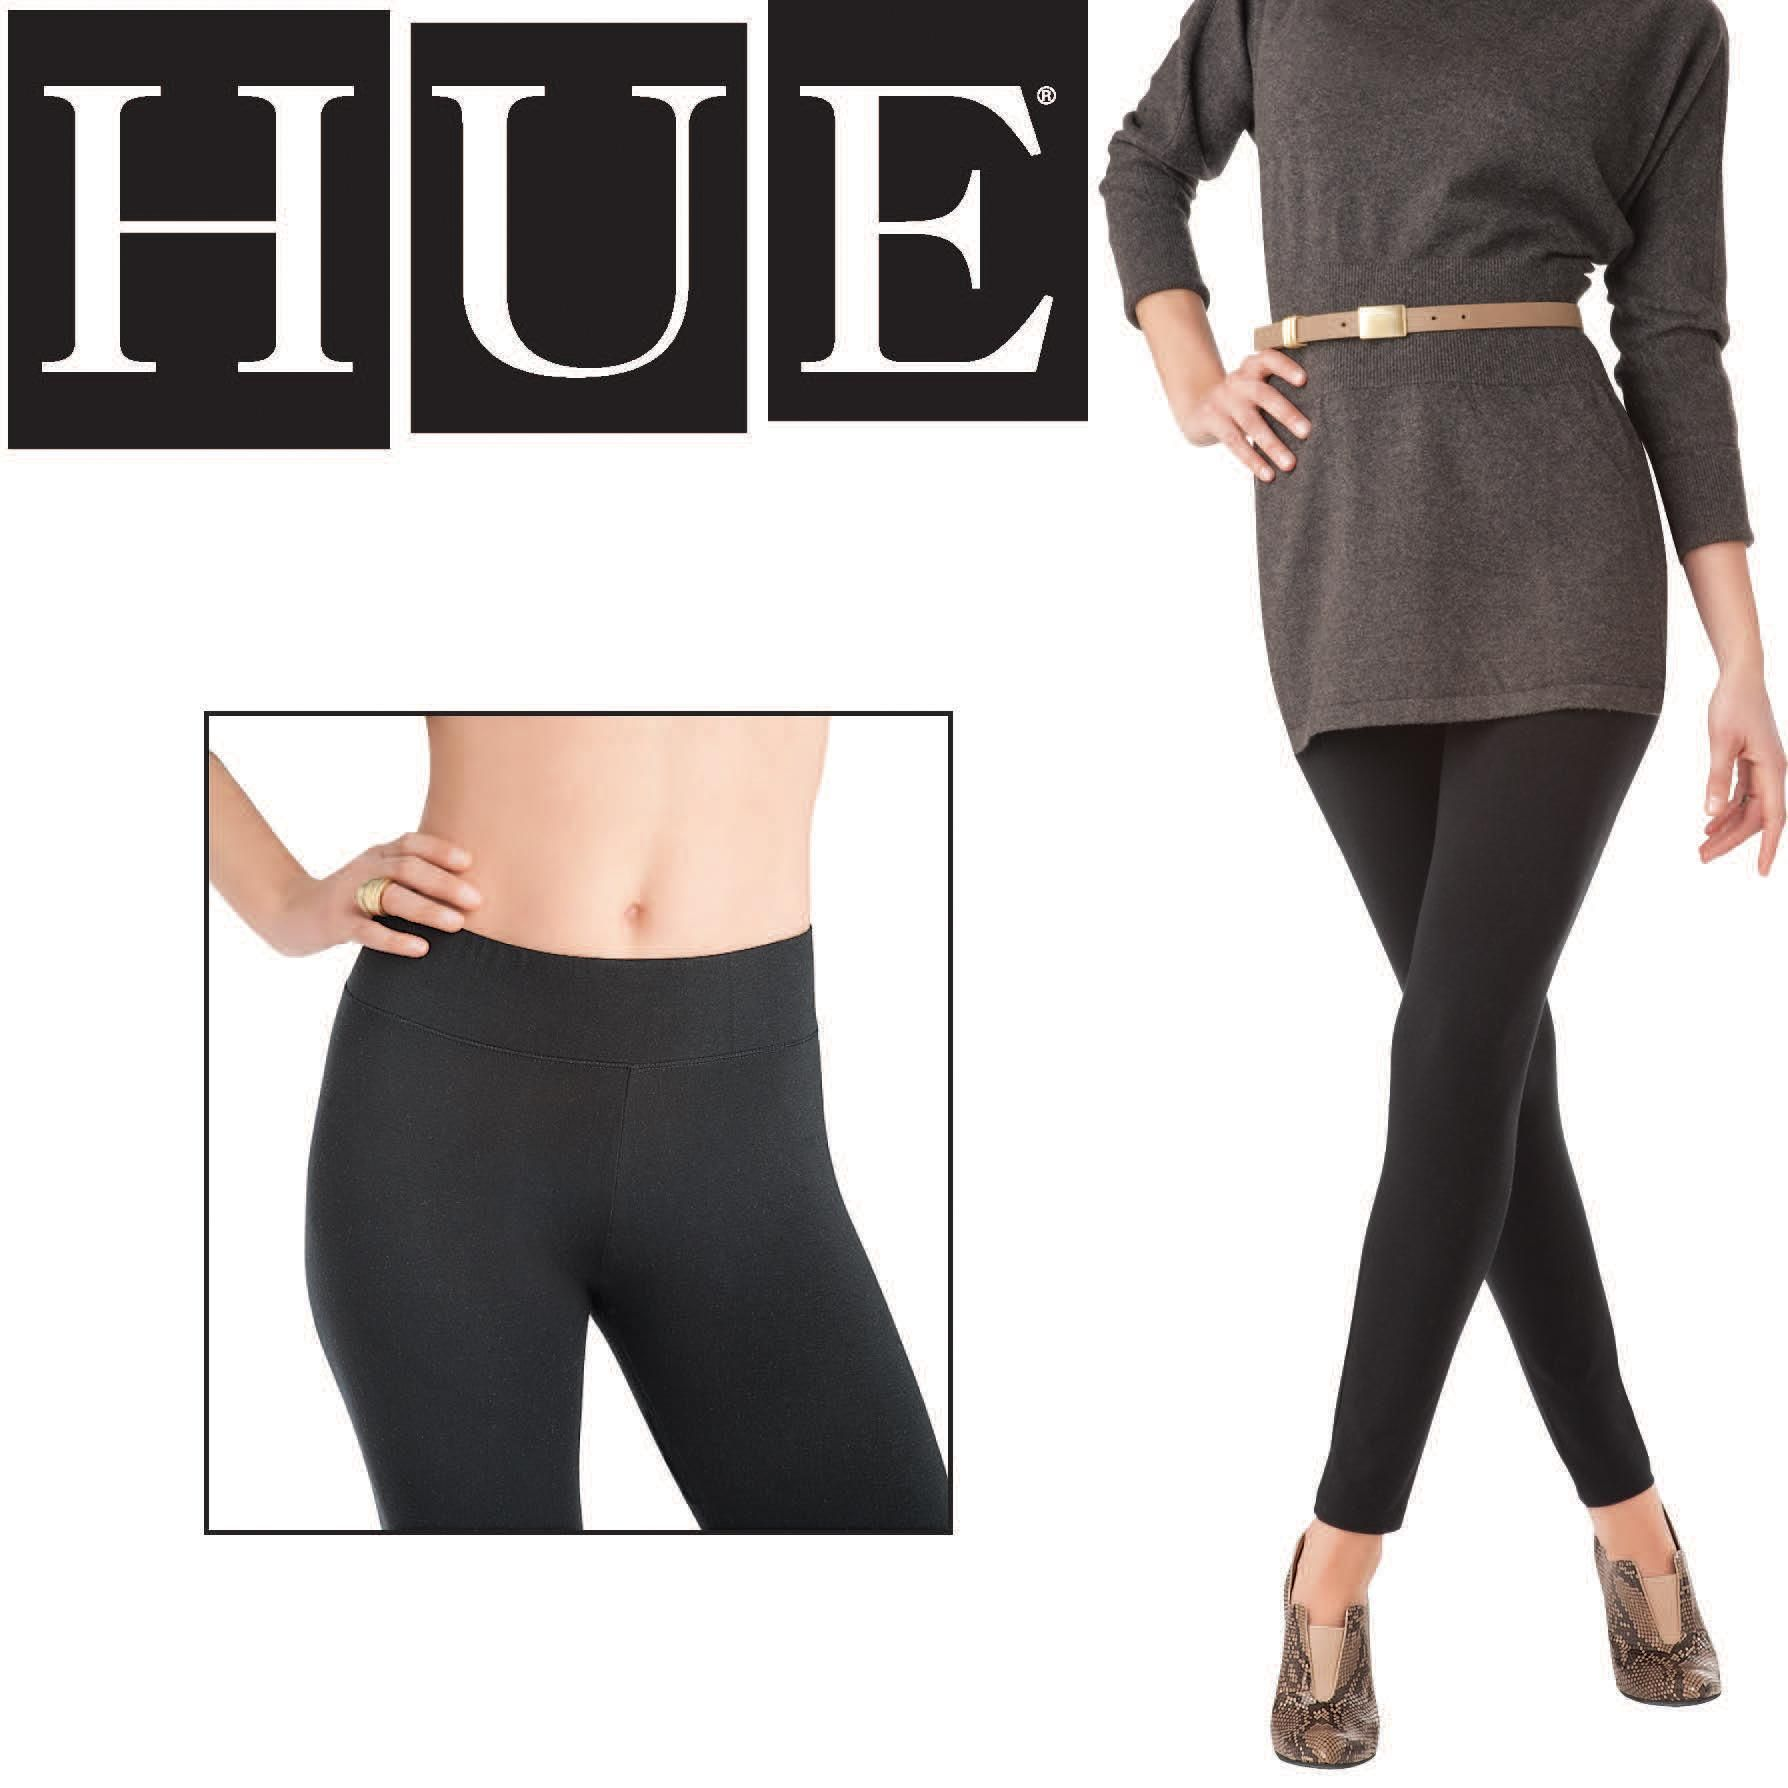 f5d971a541c08f Hue Women's Ultra Leggings with Wide Waistband at Amazon Women's Clothing  store: Leggings Pants